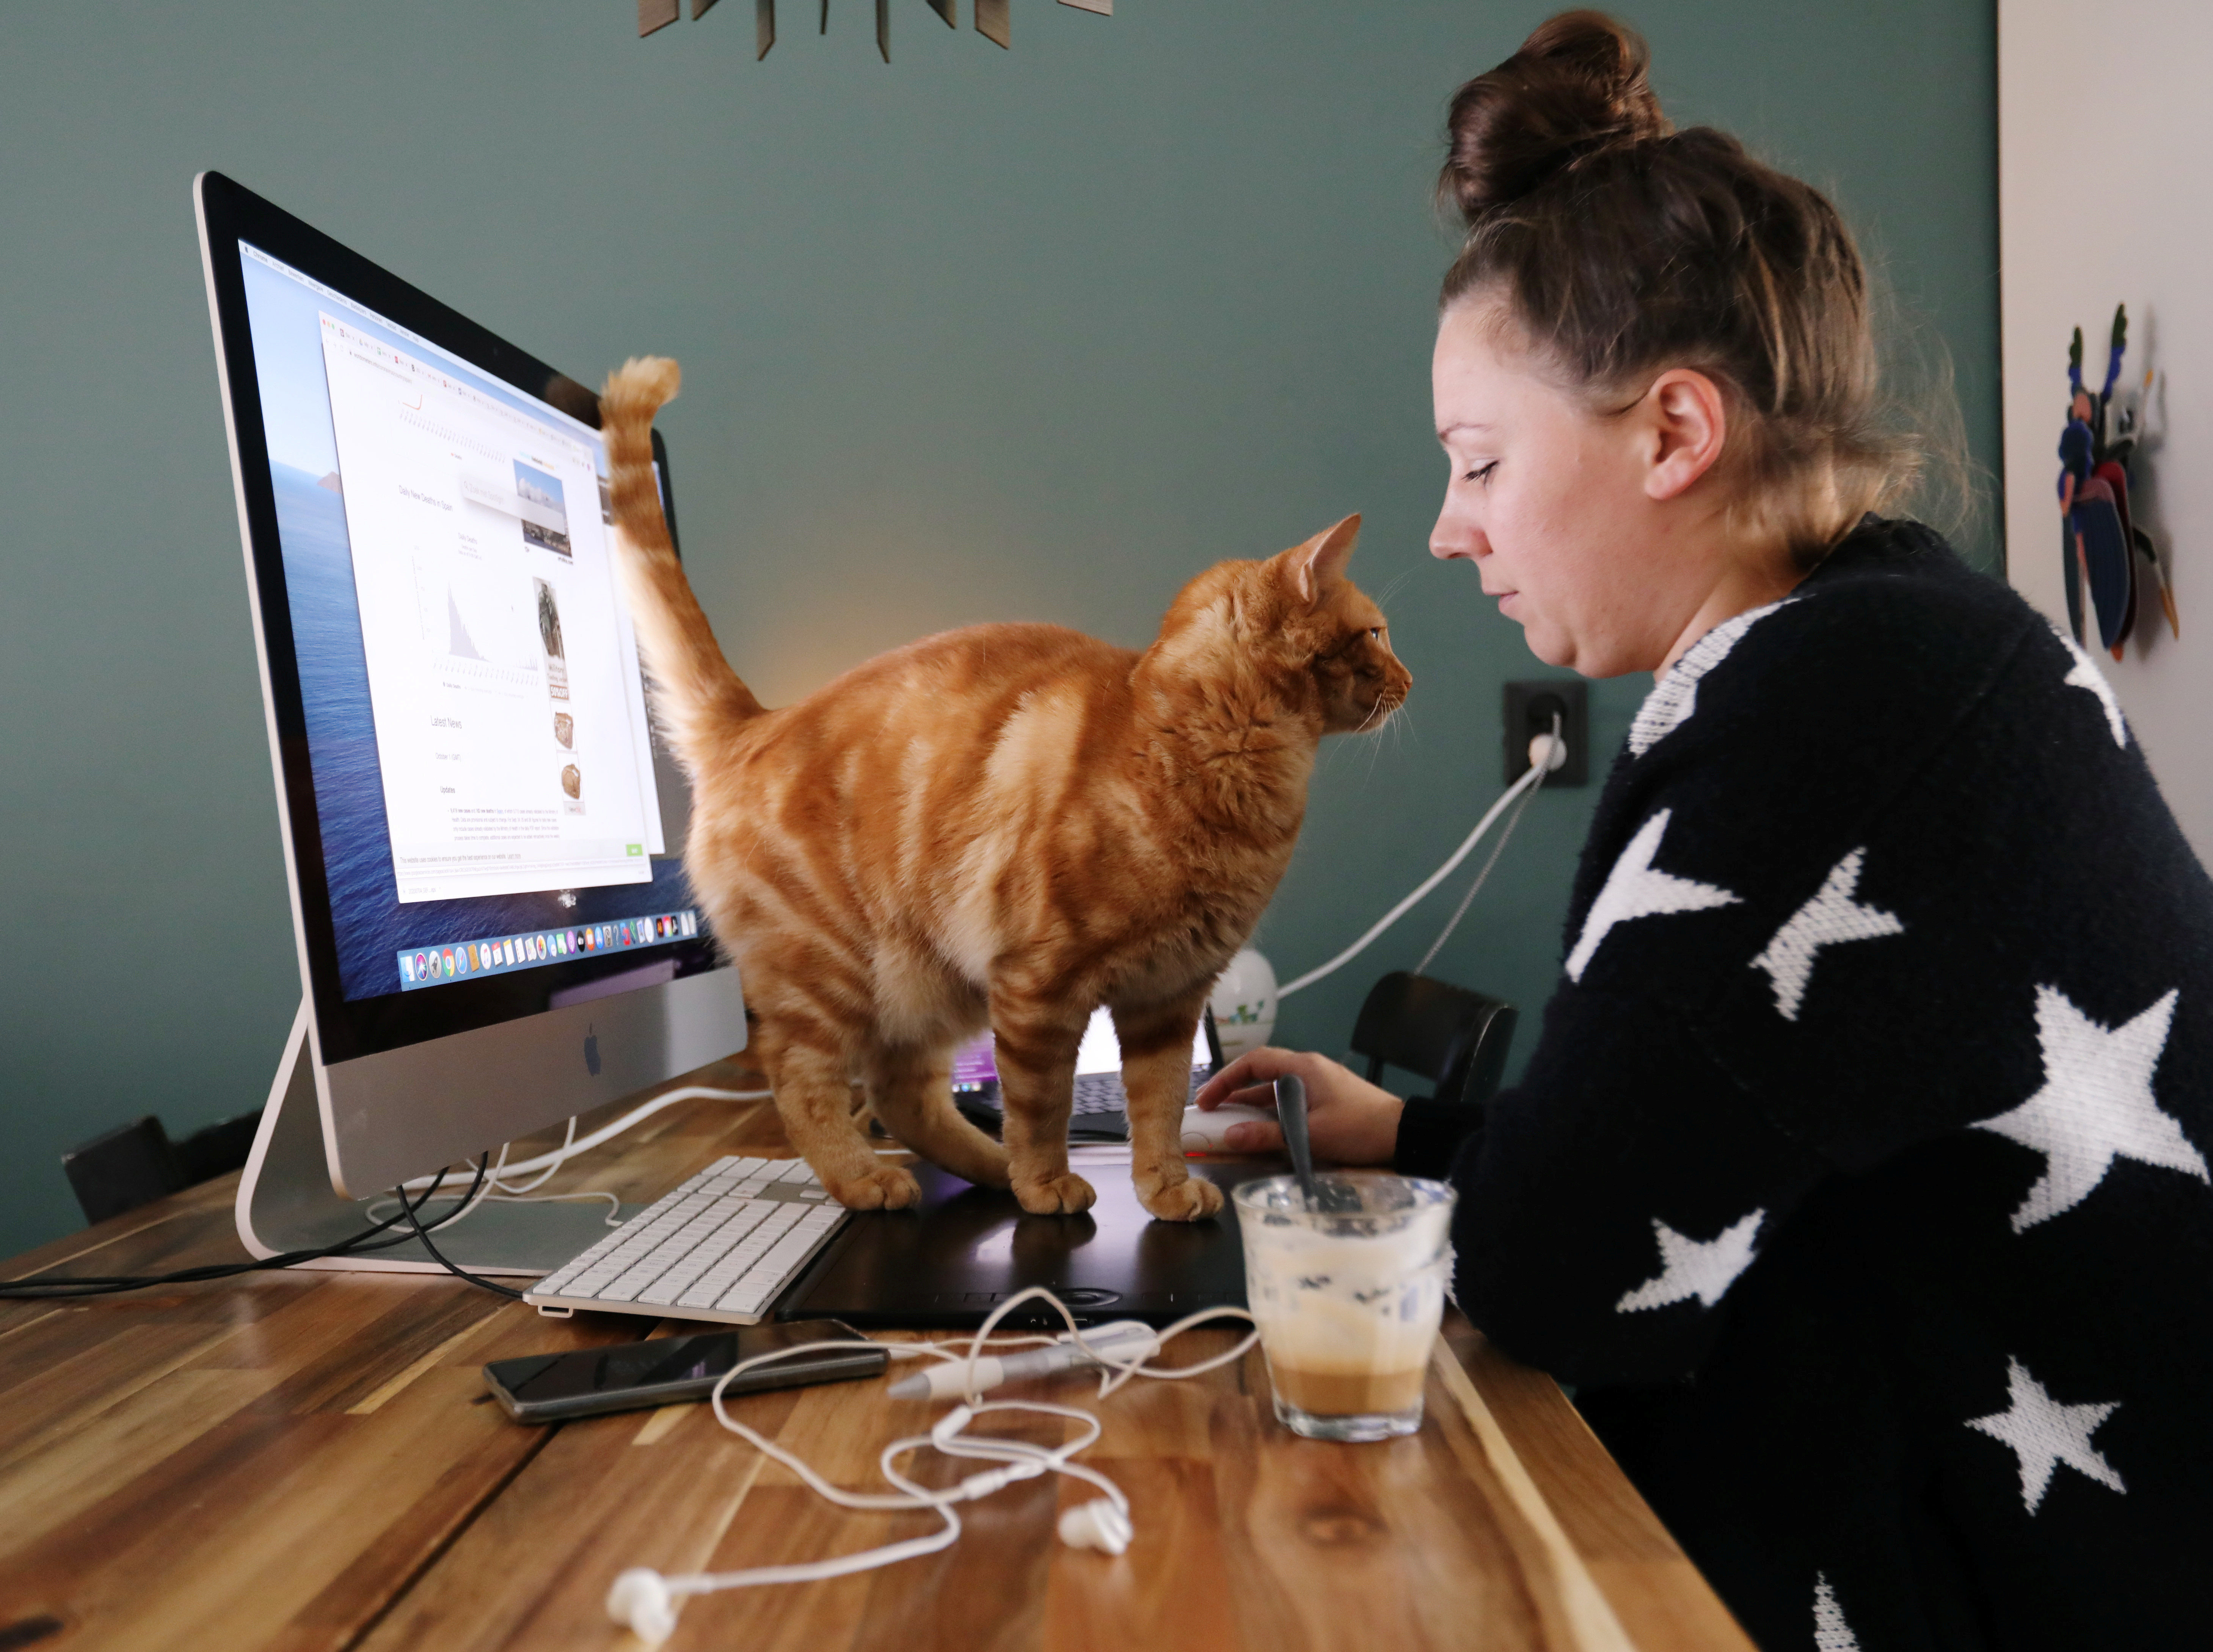 A woman works in a house with her cat on the keyboard